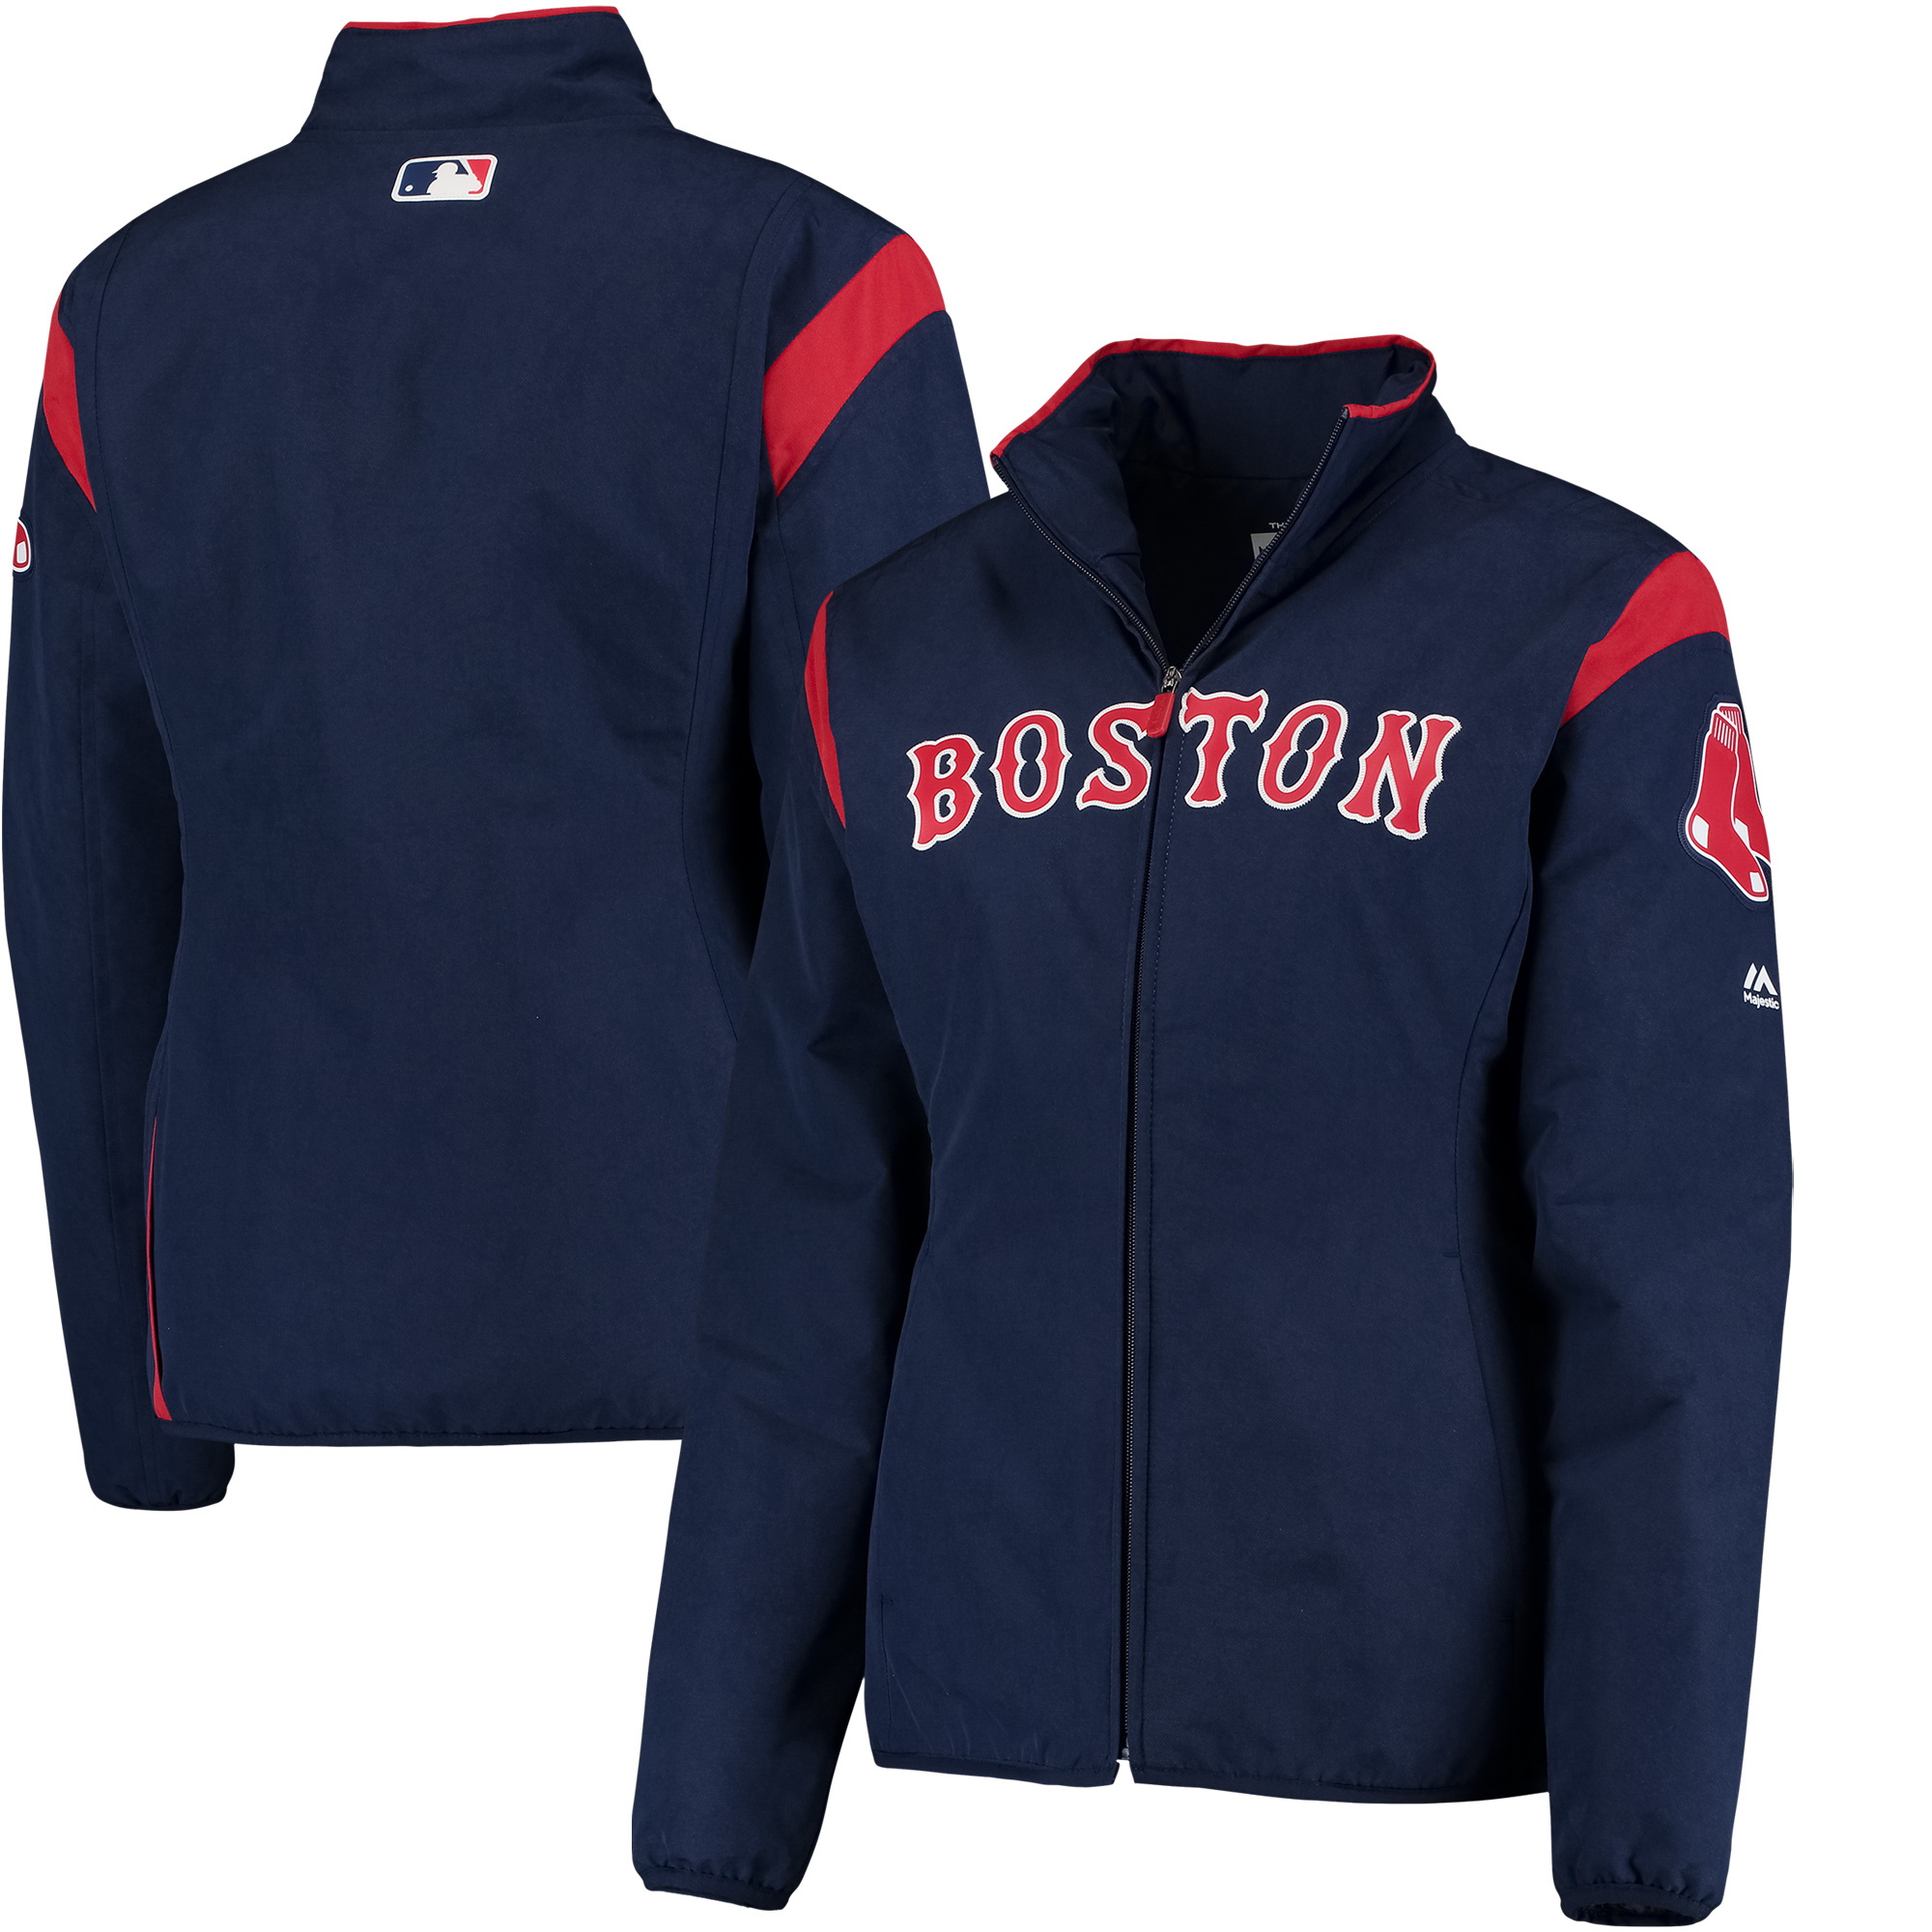 Boston Red Sox Majestic Women's On-Field Thermal Jacket - Navy